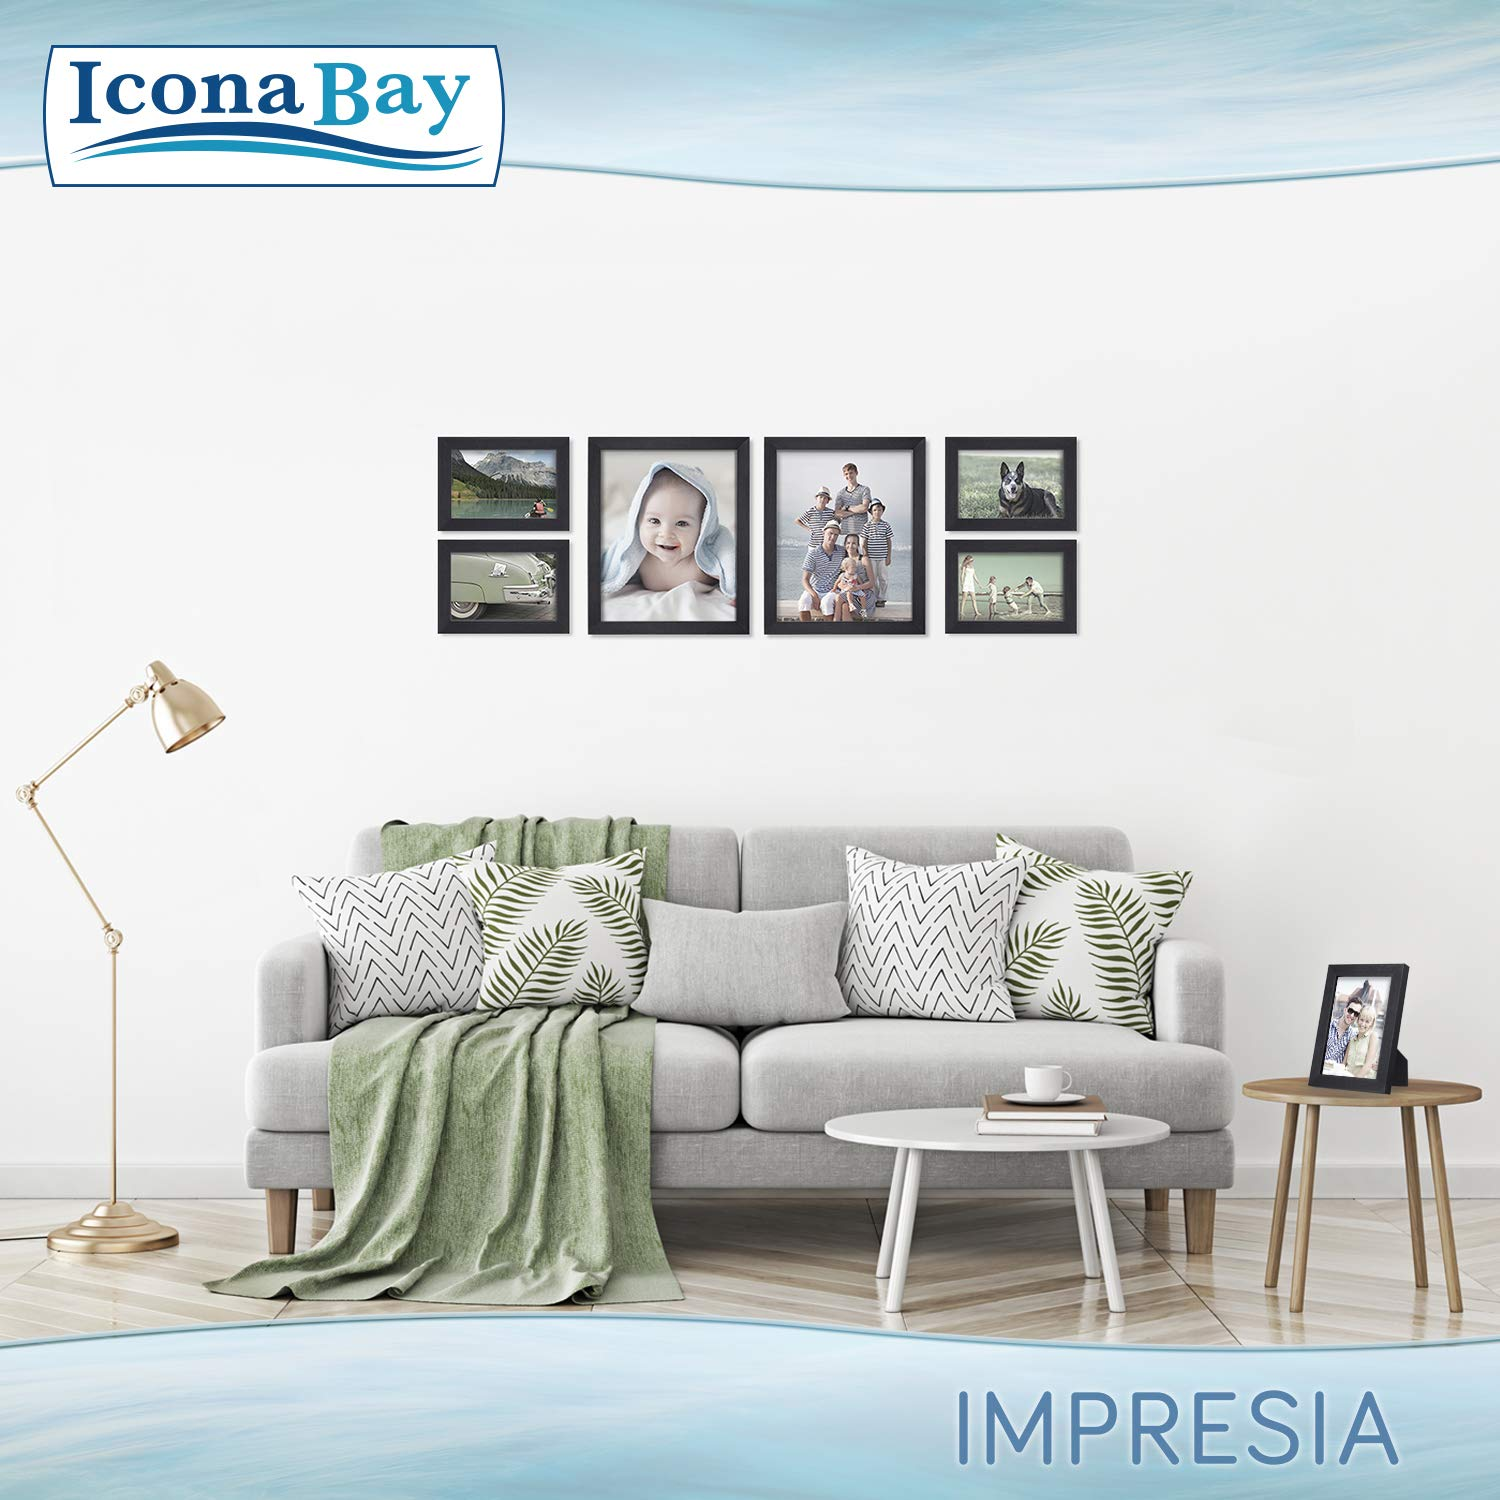 Icona Bay 8x10 Picture Frame Pack (4 Pack, Black) 8 x 10 Frame, Tabletop and Wall Hang Hardware Included with Photo Frames, Impresia Collection by Icona Bay (Image #7)